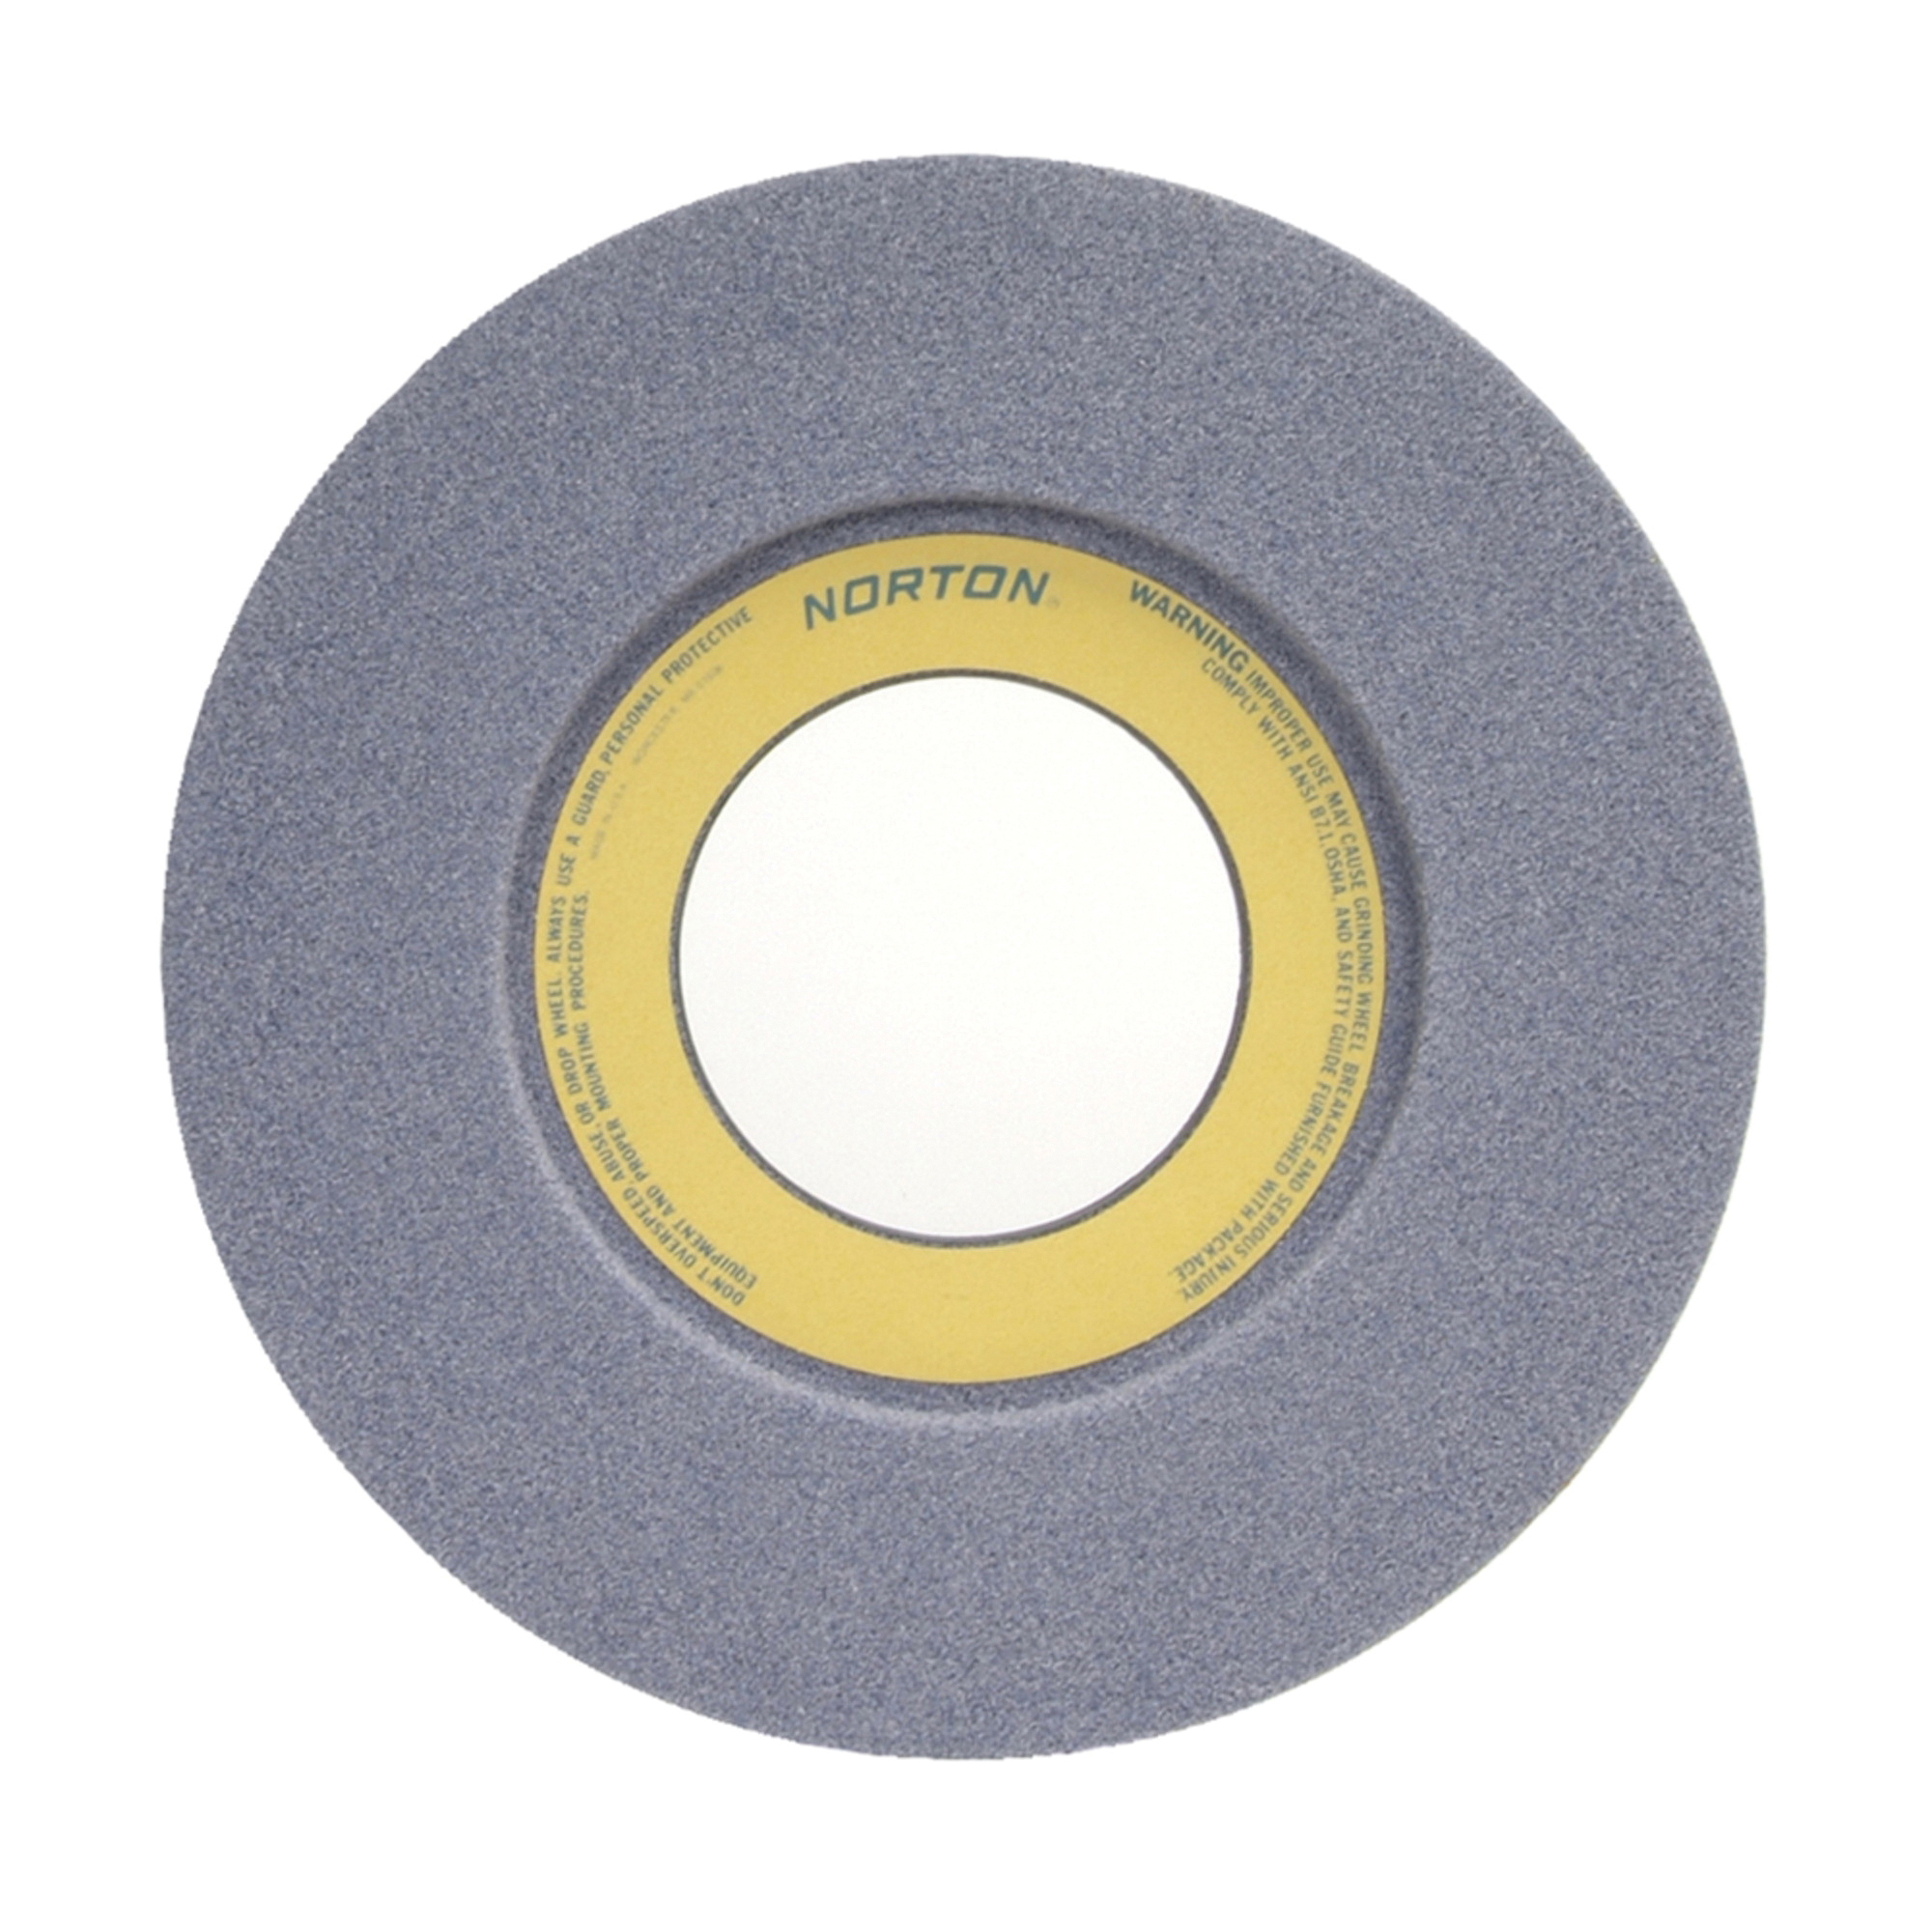 Norton® 66253263169 32A 1-Side Recessed Toolroom Wheel, 12 in Dia x 1-1/2 in THK, 5 in Center Hole, 46 Grit, Aluminum Oxide Abrasive